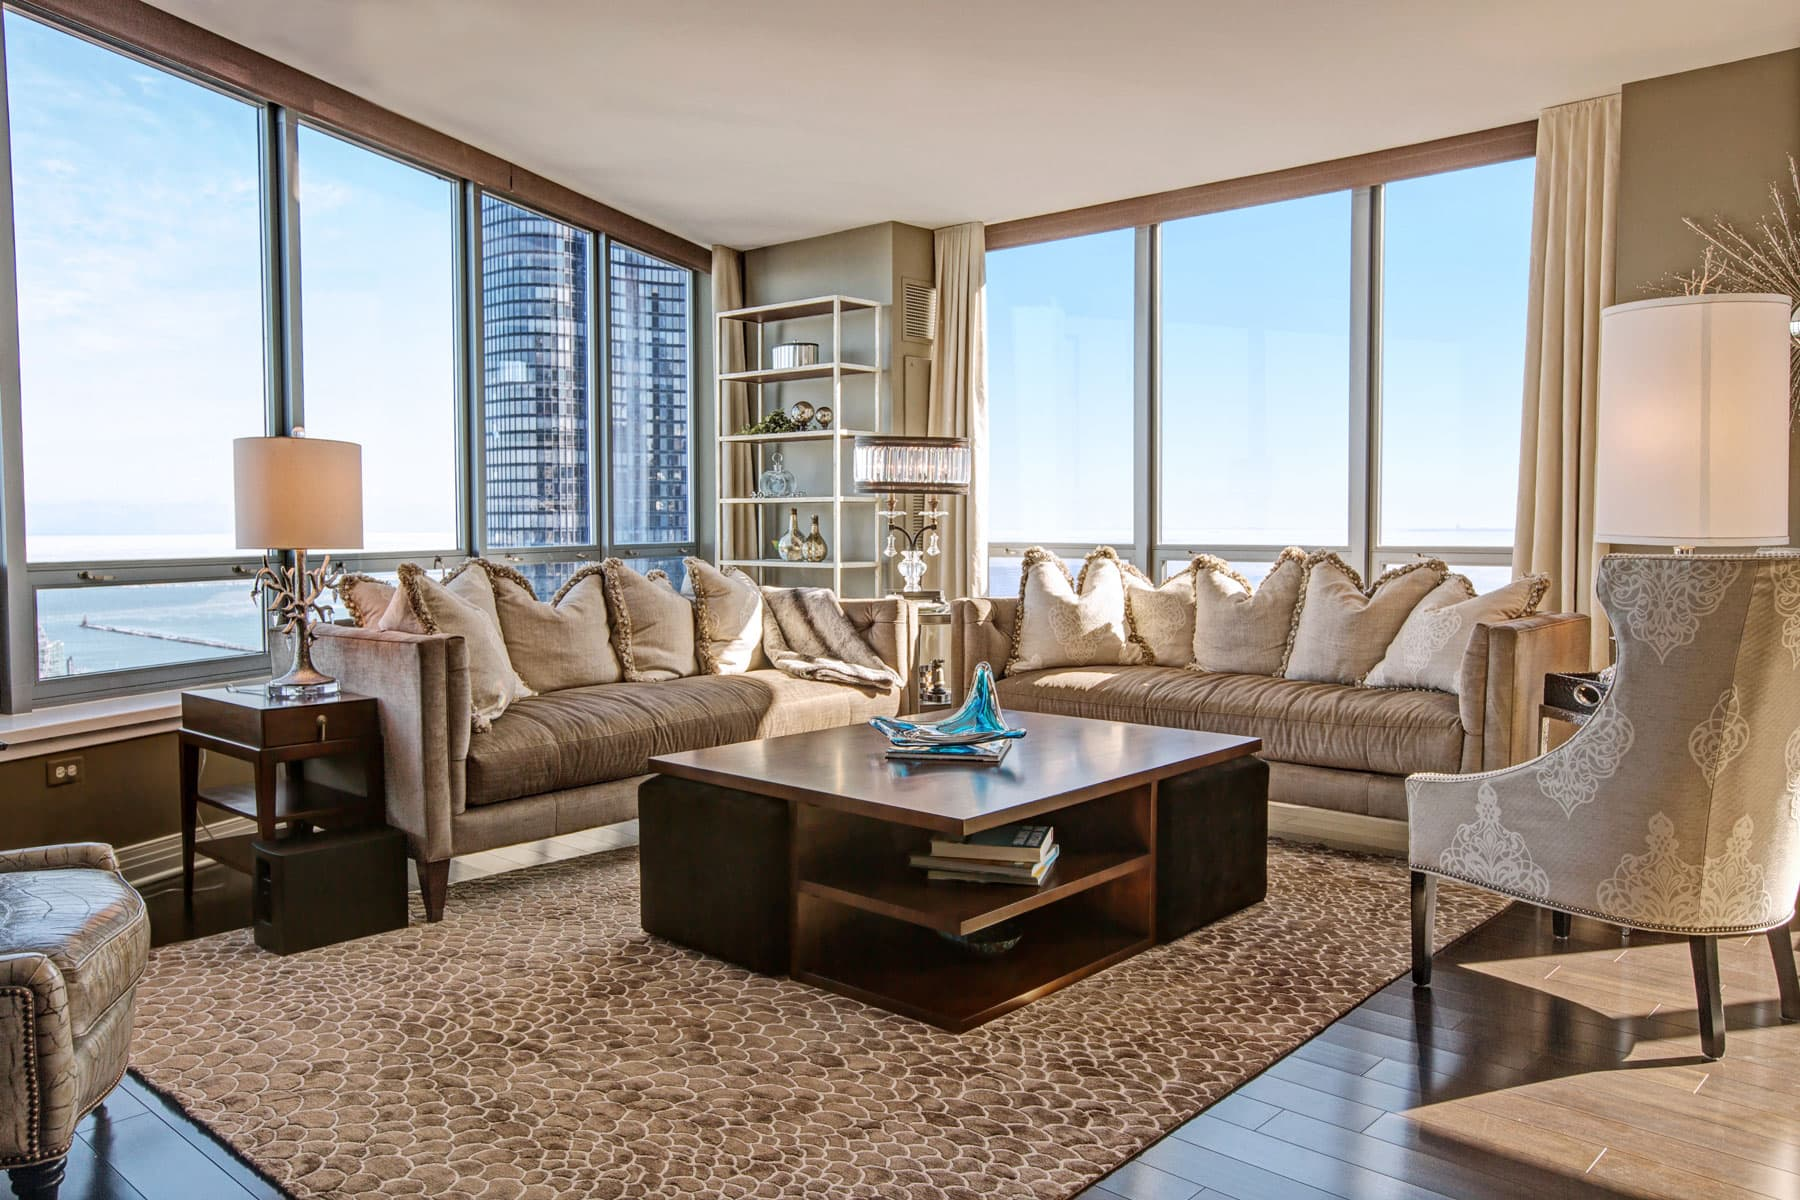 Luxury Chicago Condo Interior Design Apartment Interior Design Chicago